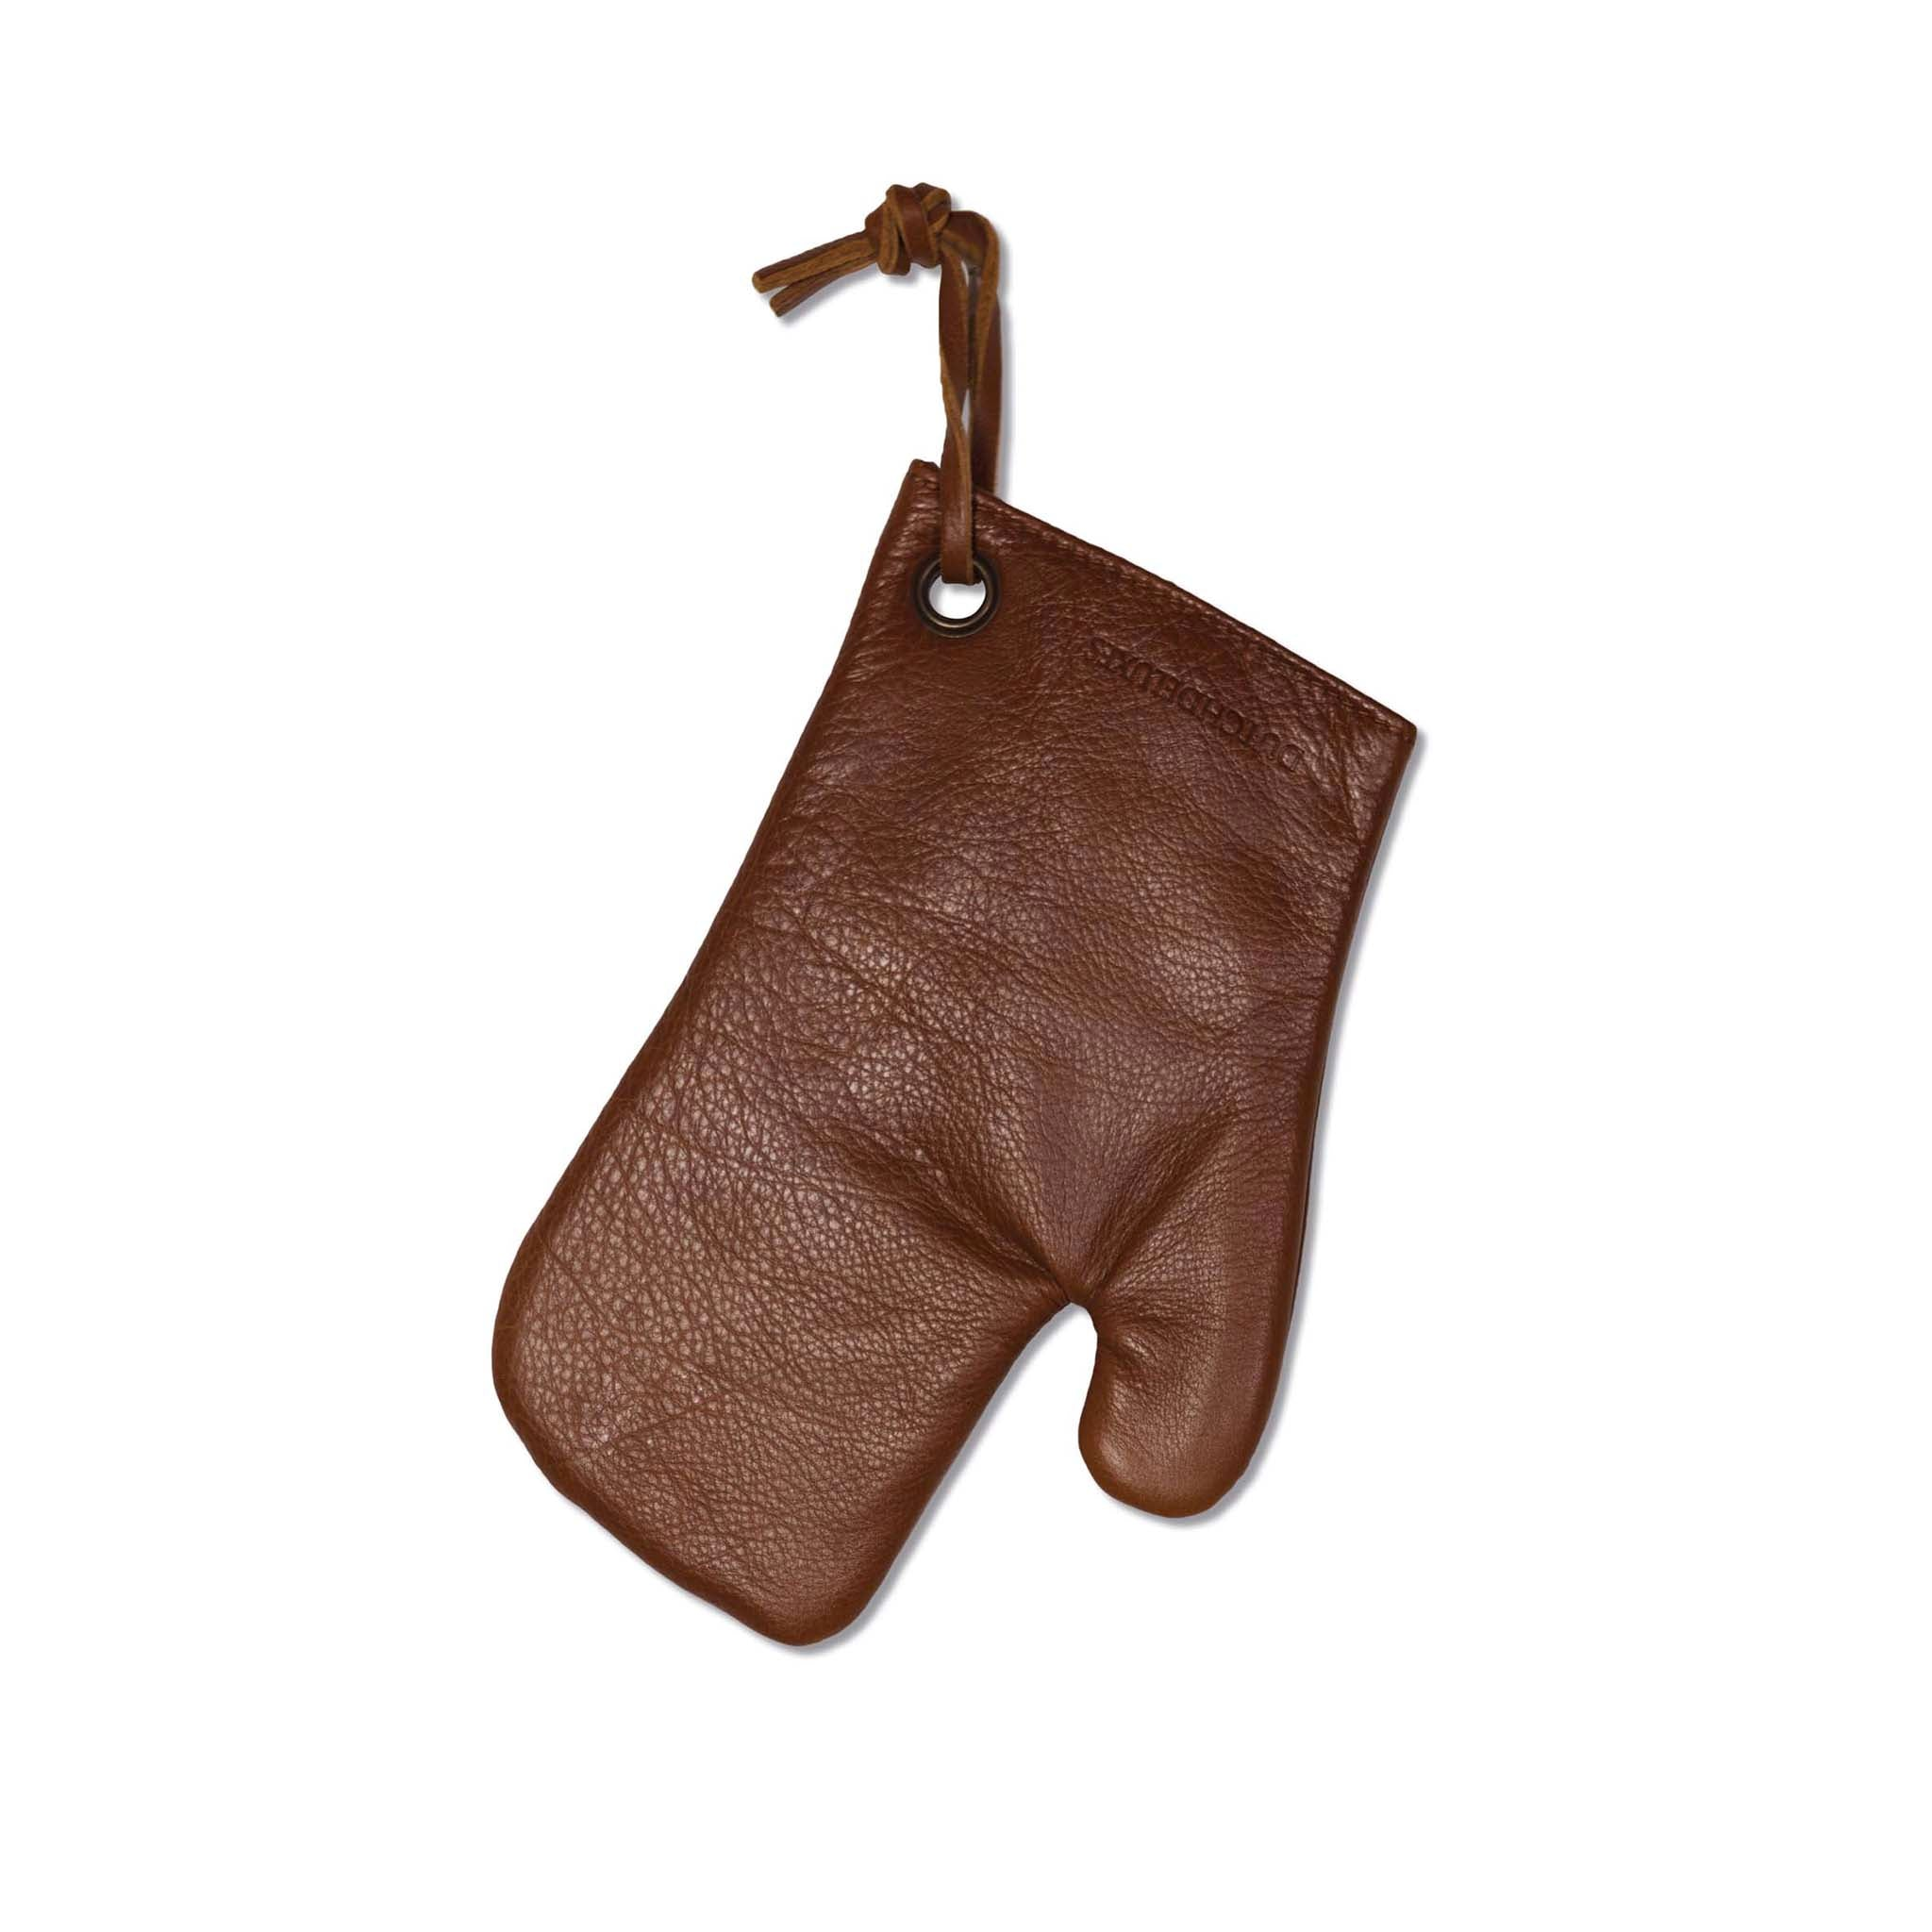 Dutchdeluxes Classic Oven Glove in Classic Brown Cookware Kitchen Clothing